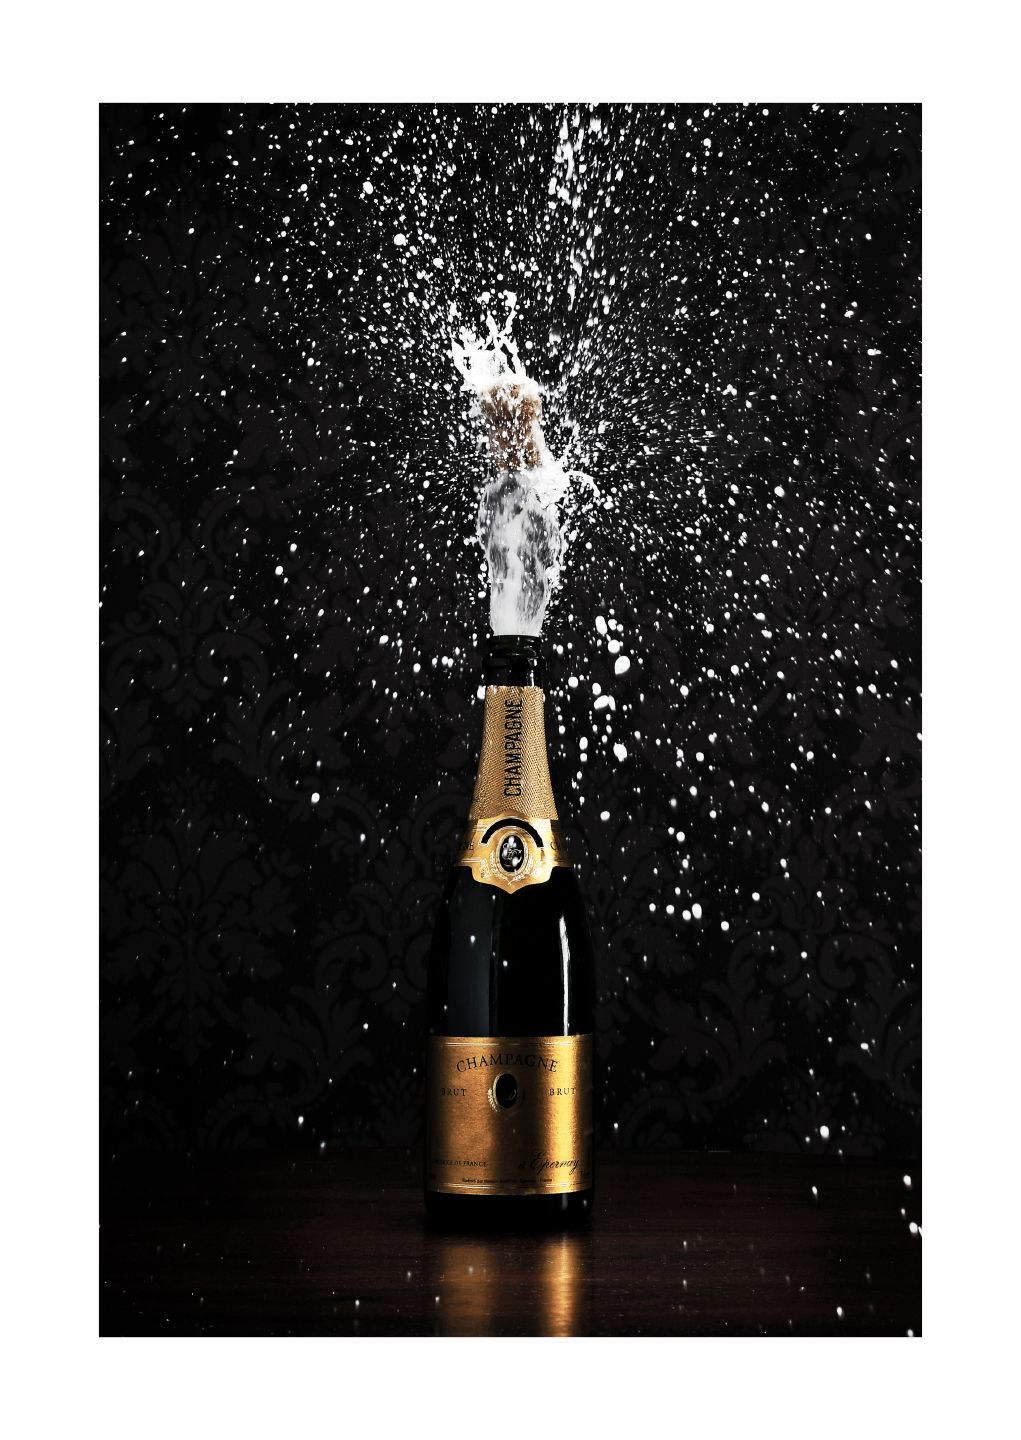 Popping Champagne Poster Champagne Pop Champagne Poster